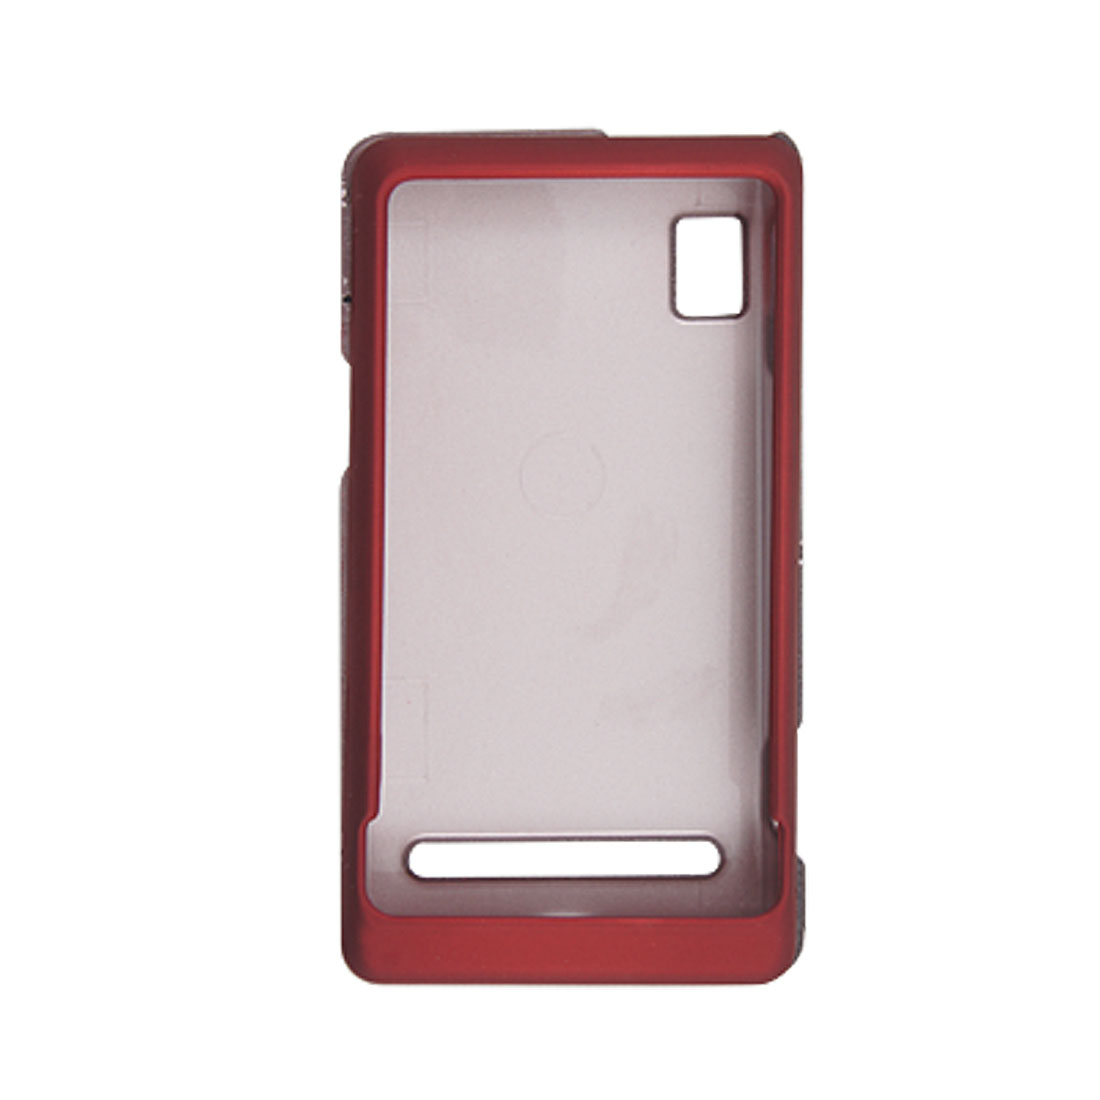 Carmine Rubberized Plastic Case Cover for Motorola A955